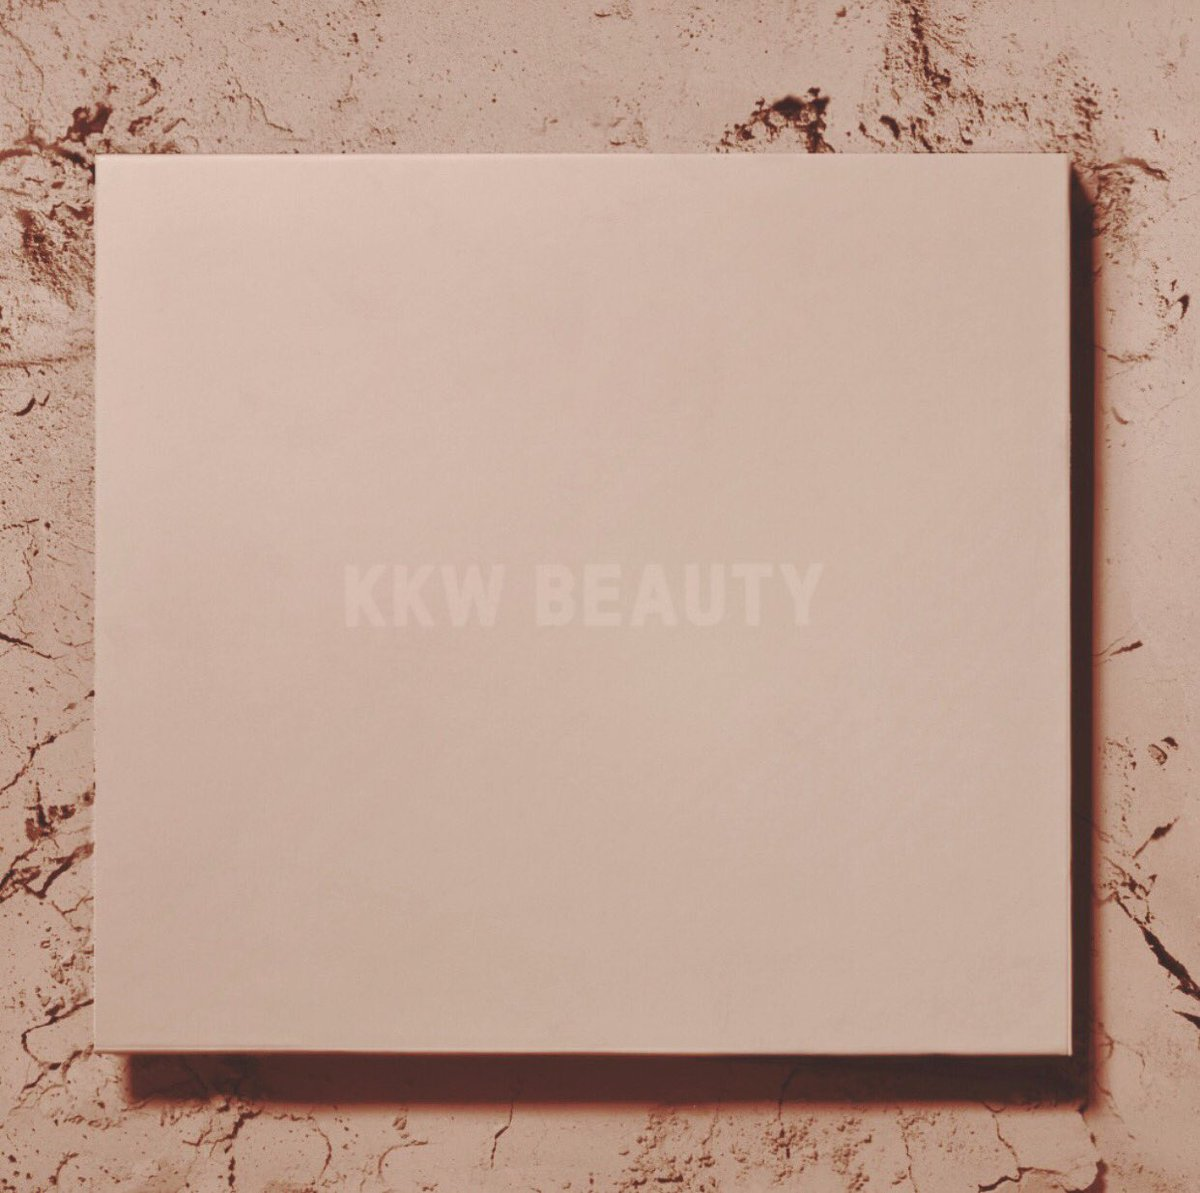 KKW BEAUTY Contour & Highlight Kits are on sale for Black Friday up to 30% off! Go to